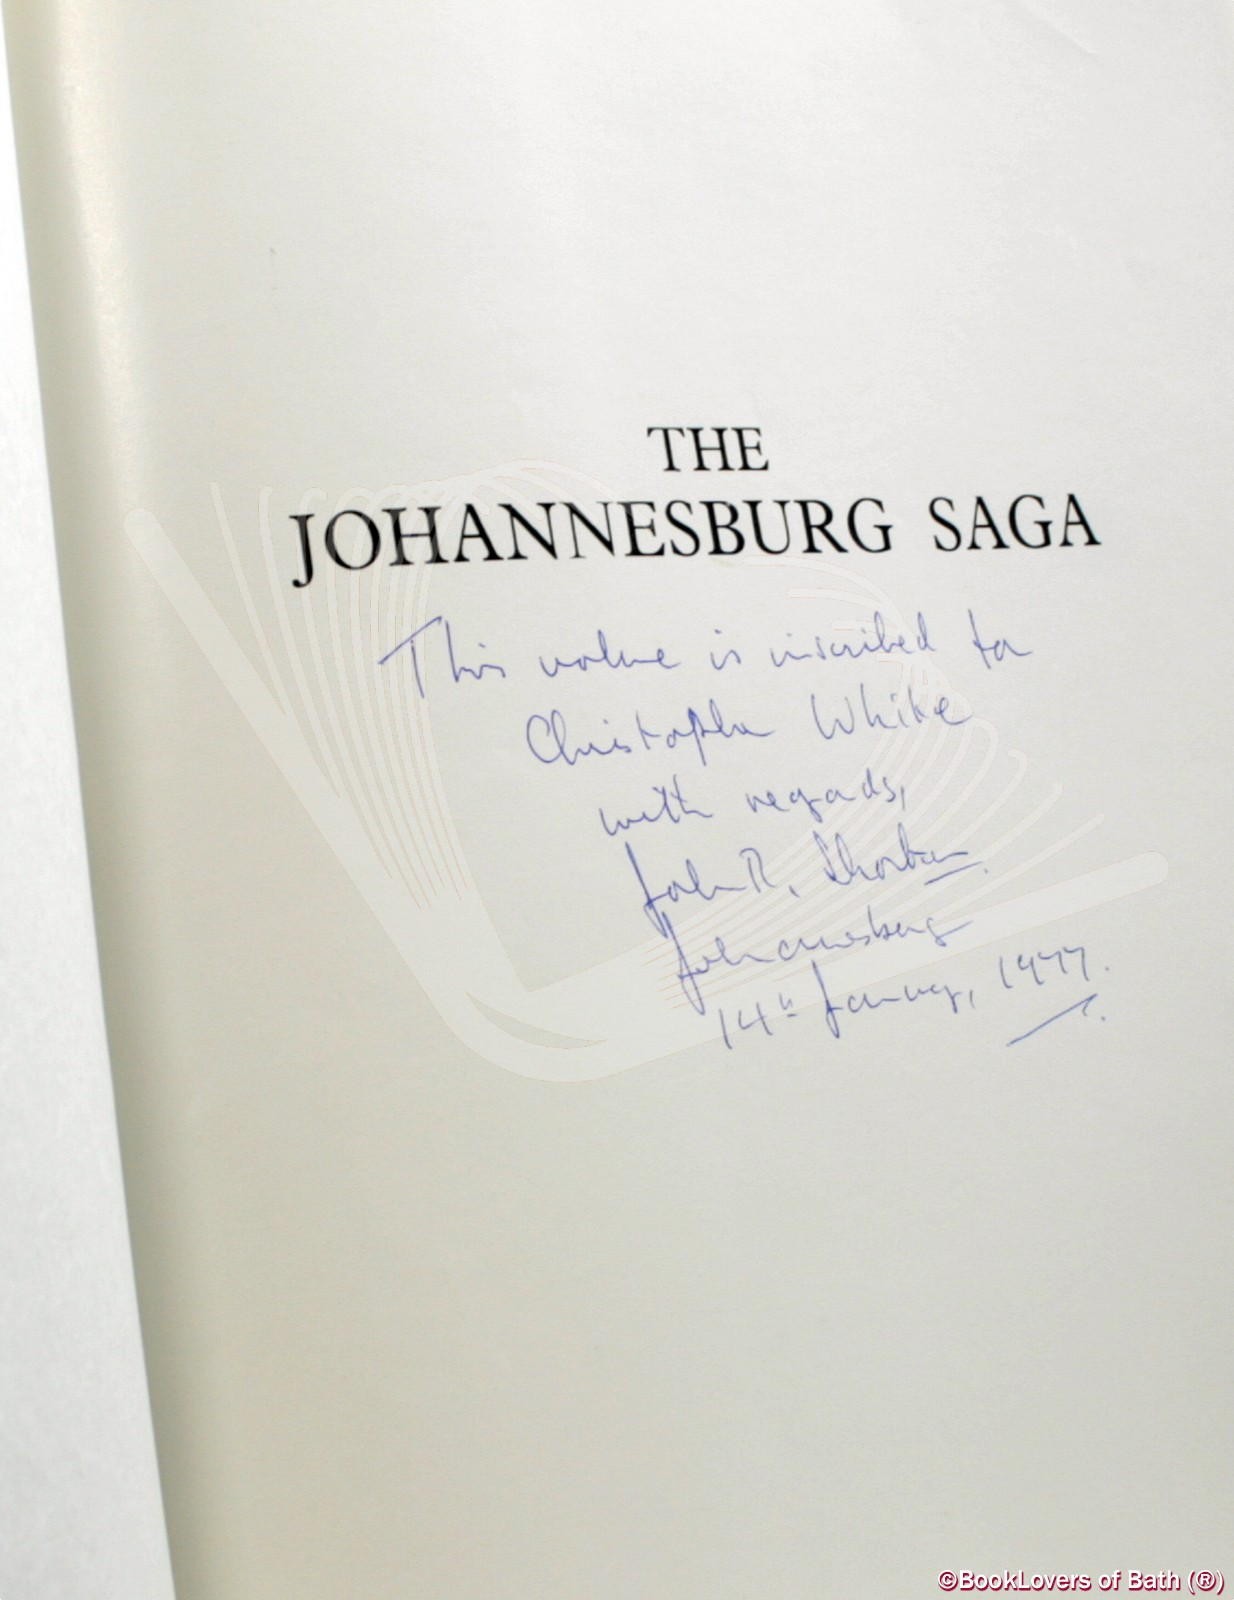 The Johannesburg Saga - John R. Shorten